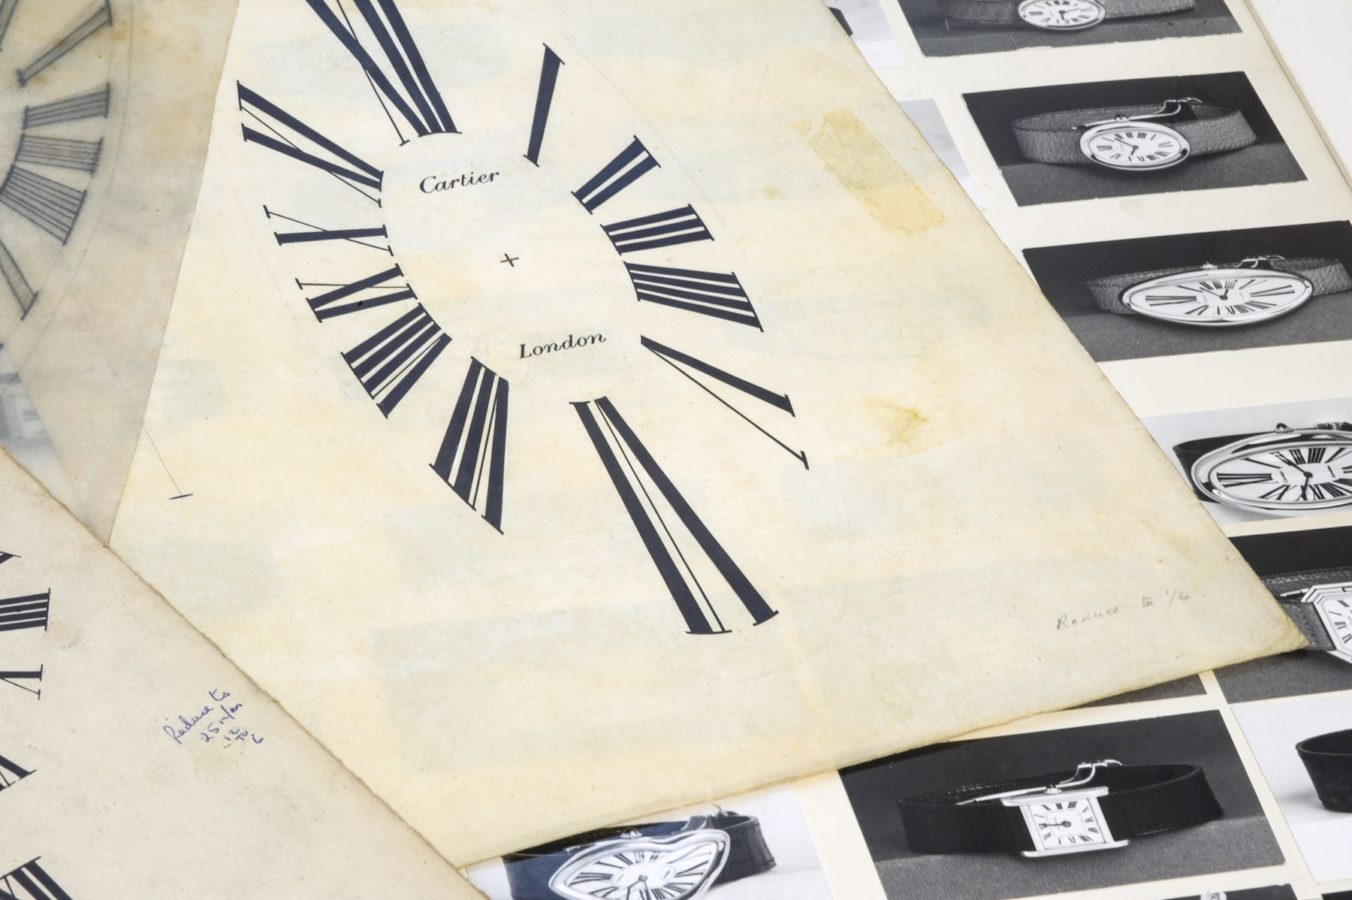 Cartier Vintage collection: A look at the most important watches in the maison's history